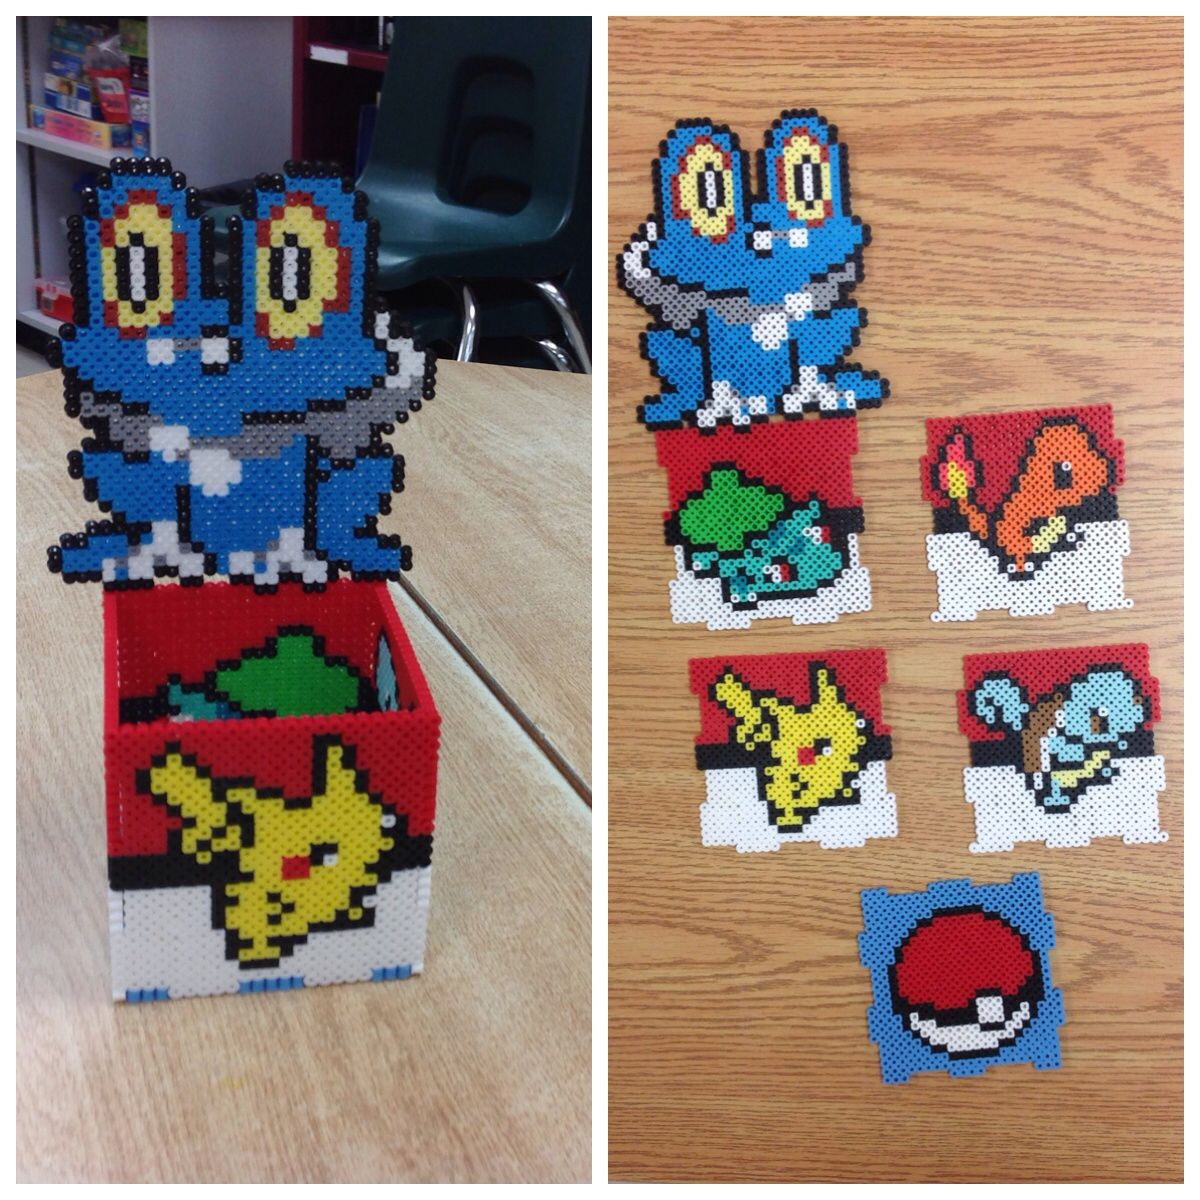 pokemon box perler beads by amanda collison easy perler bead patterns 3d perler bead  [ 1200 x 1200 Pixel ]